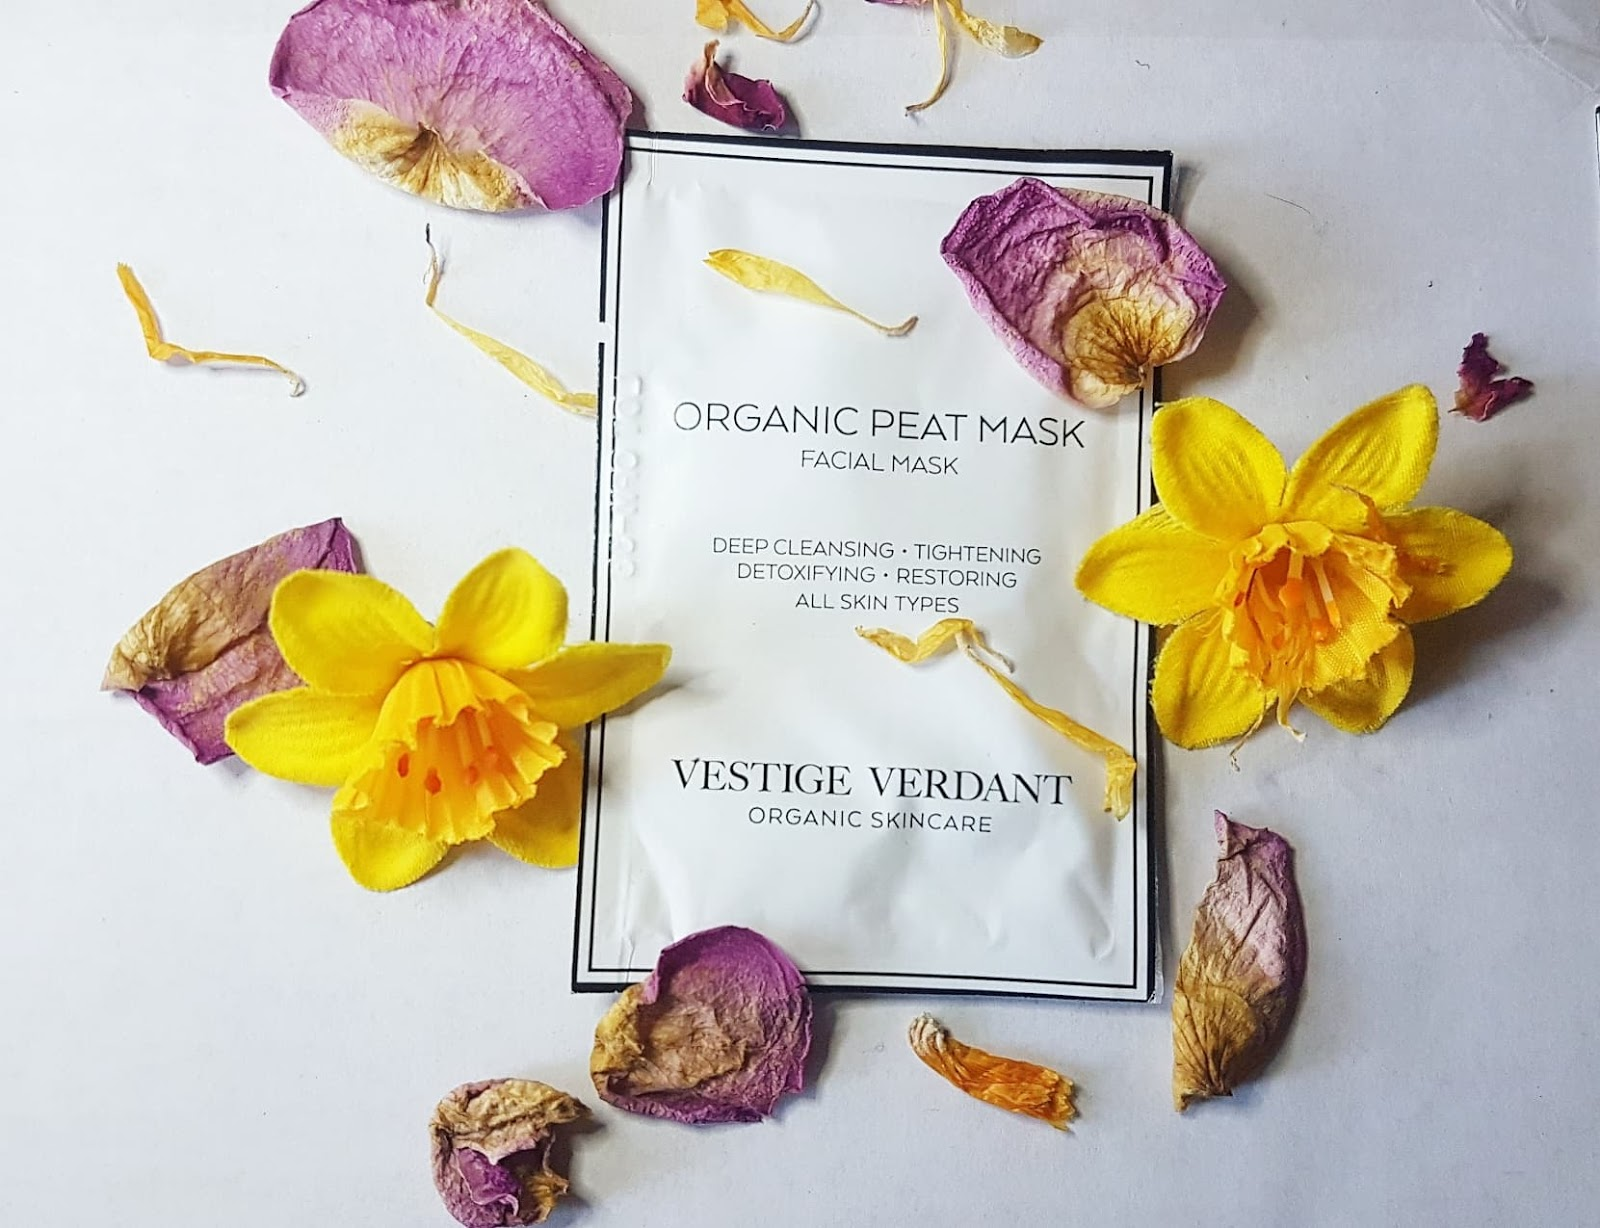 Vestige Verdant Organic Peat Mask Review - Love Lula Beauty Box